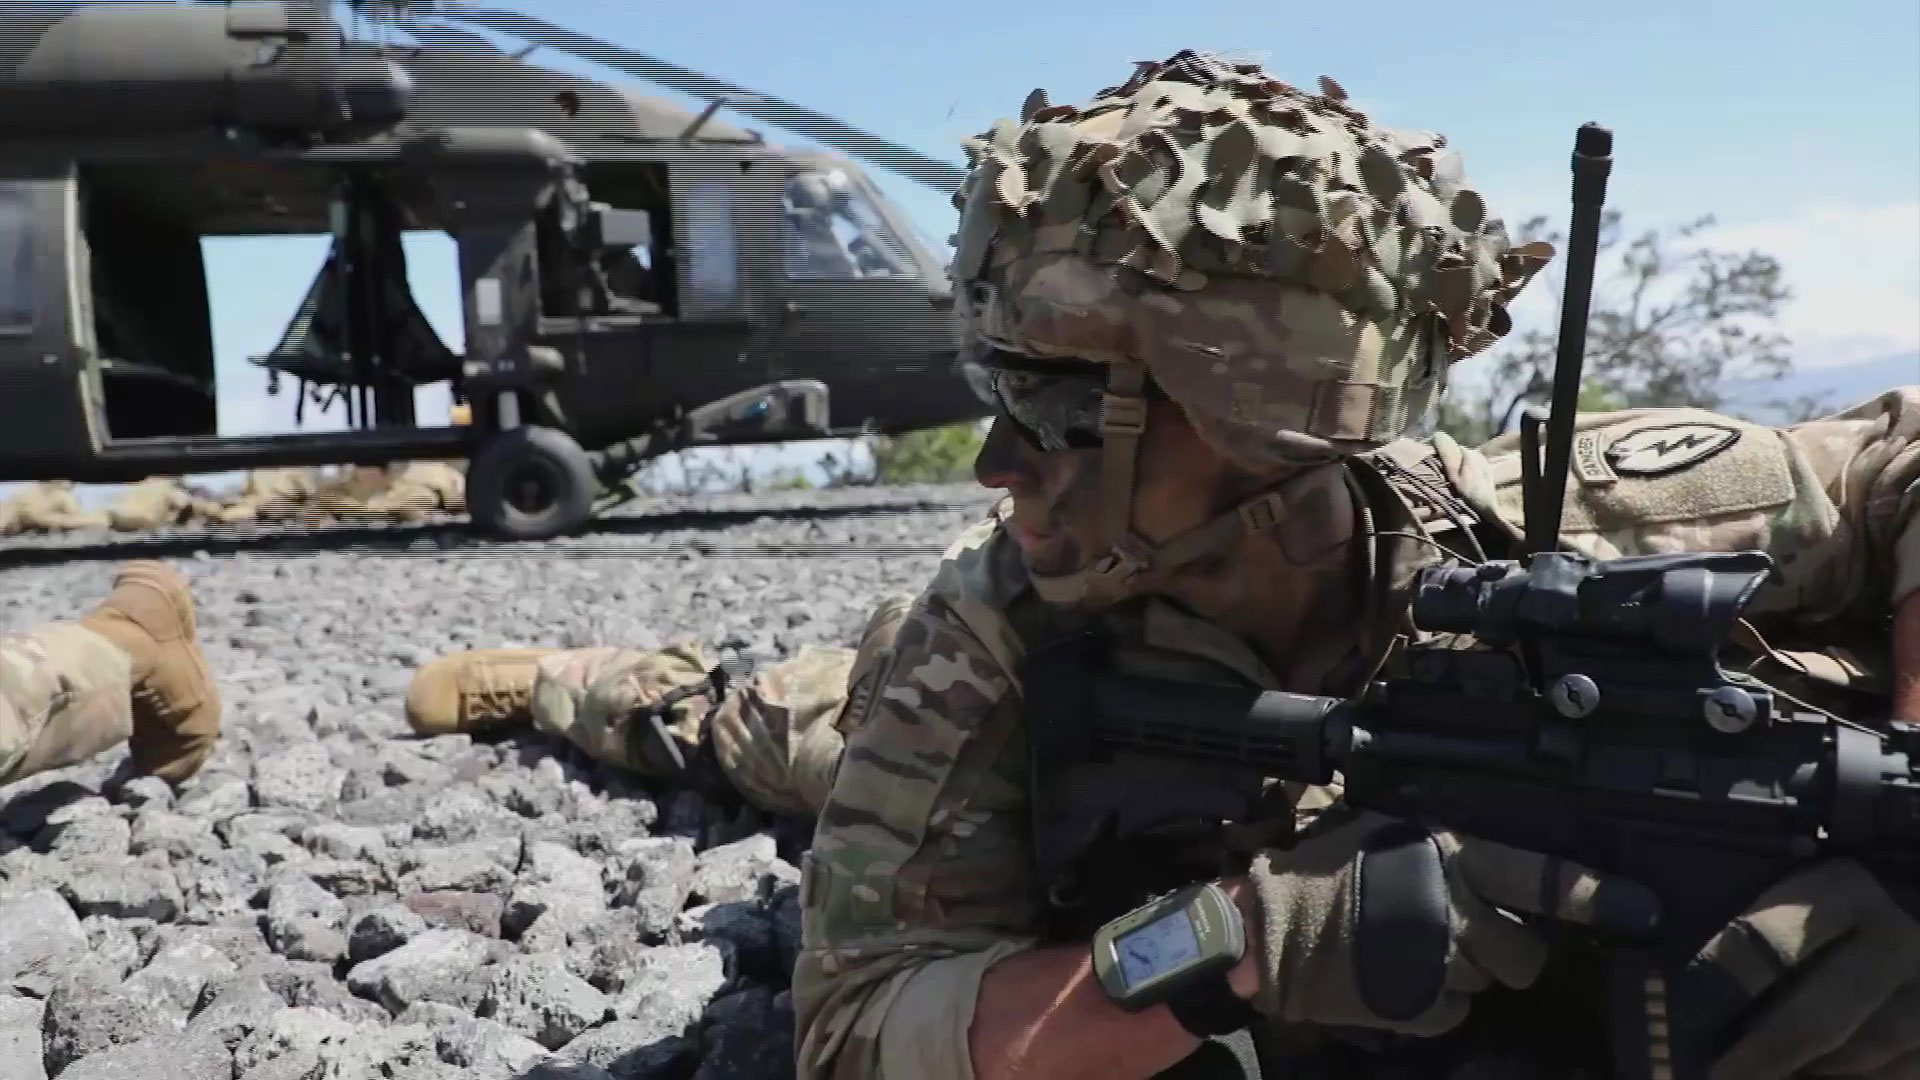 U.S. Army Soldiers assigned to the 25th Infantry Division work together in support of a combined arms live-fire on Pohakuloa Training Area, Hawaii.